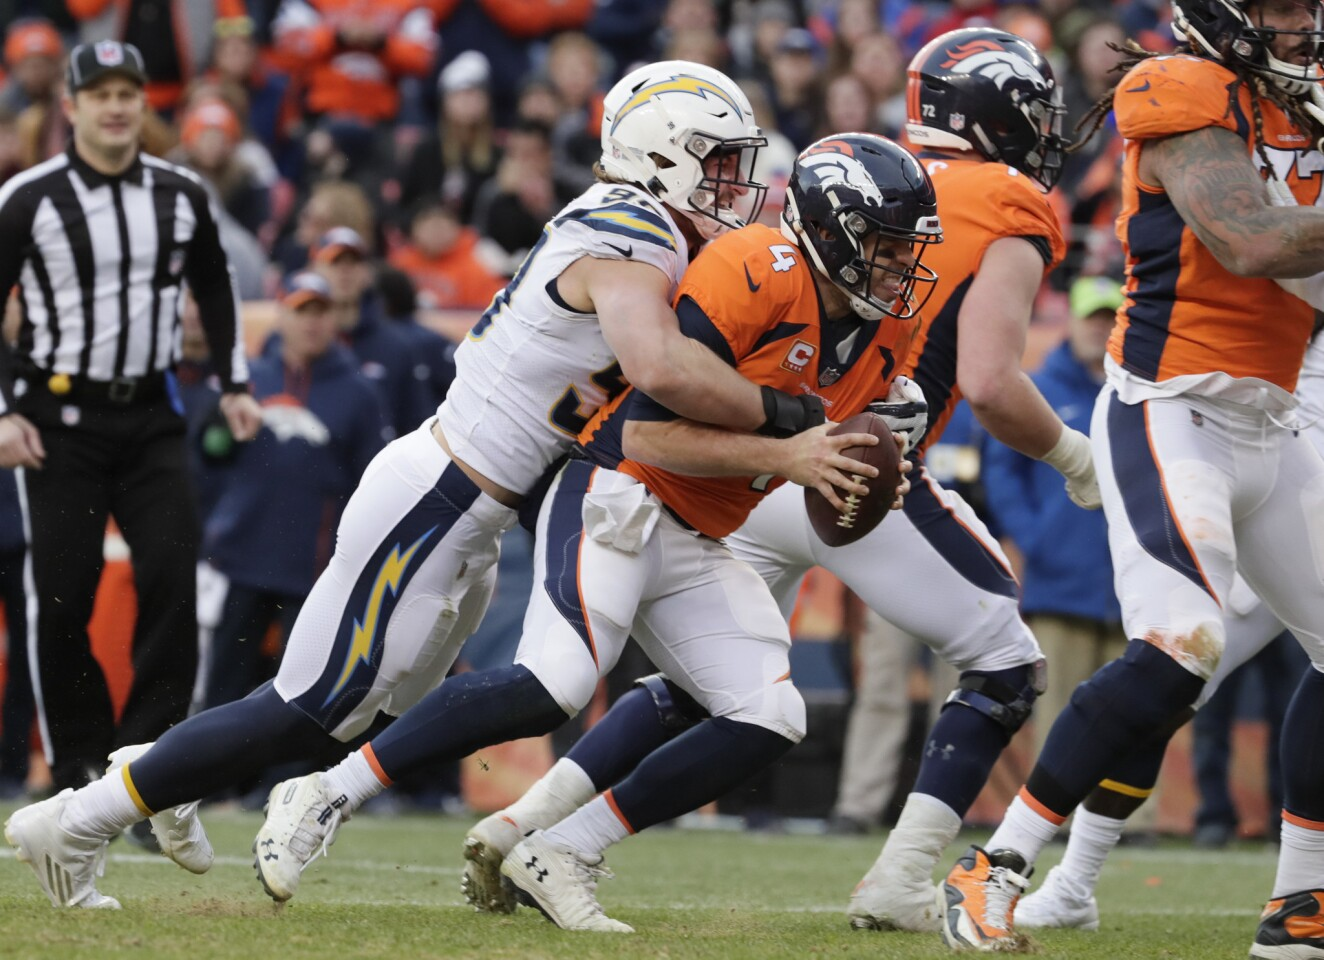 Chargers defensive end Joey Bosa sacks Broncos quarterback Case Keenum during a second quarter drive at Mile High Stadium.